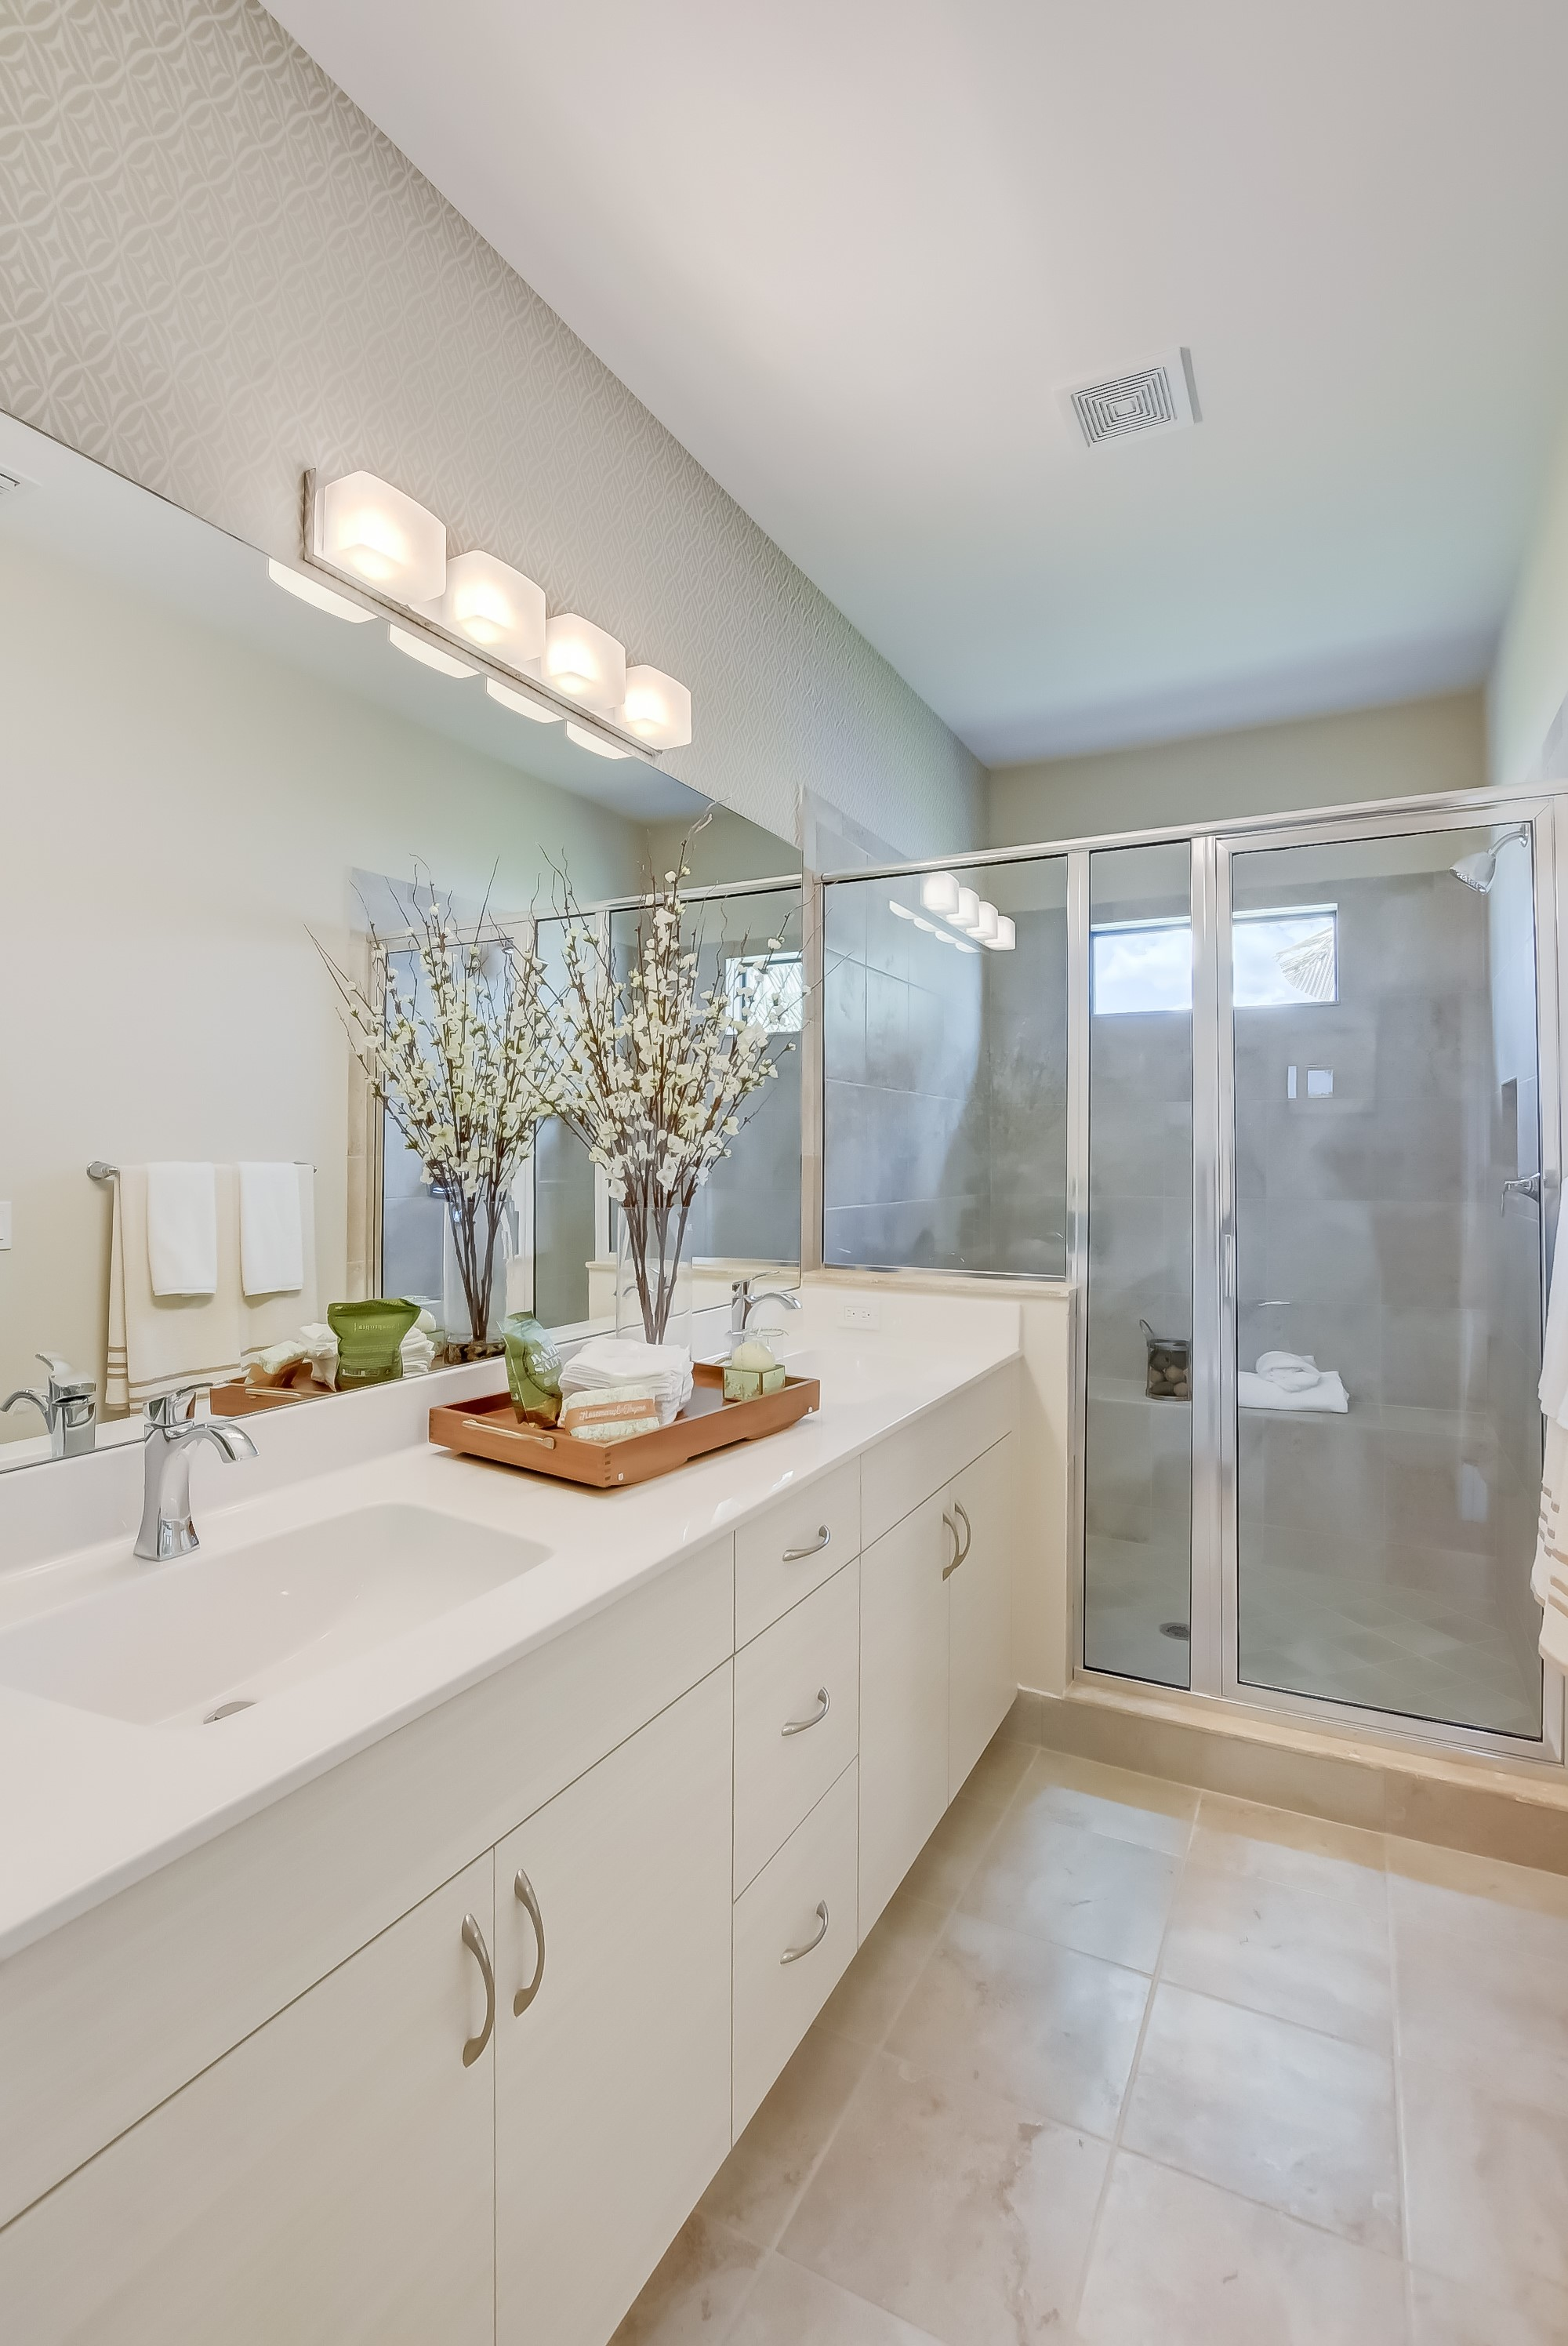 Owner's bath with dual sinks